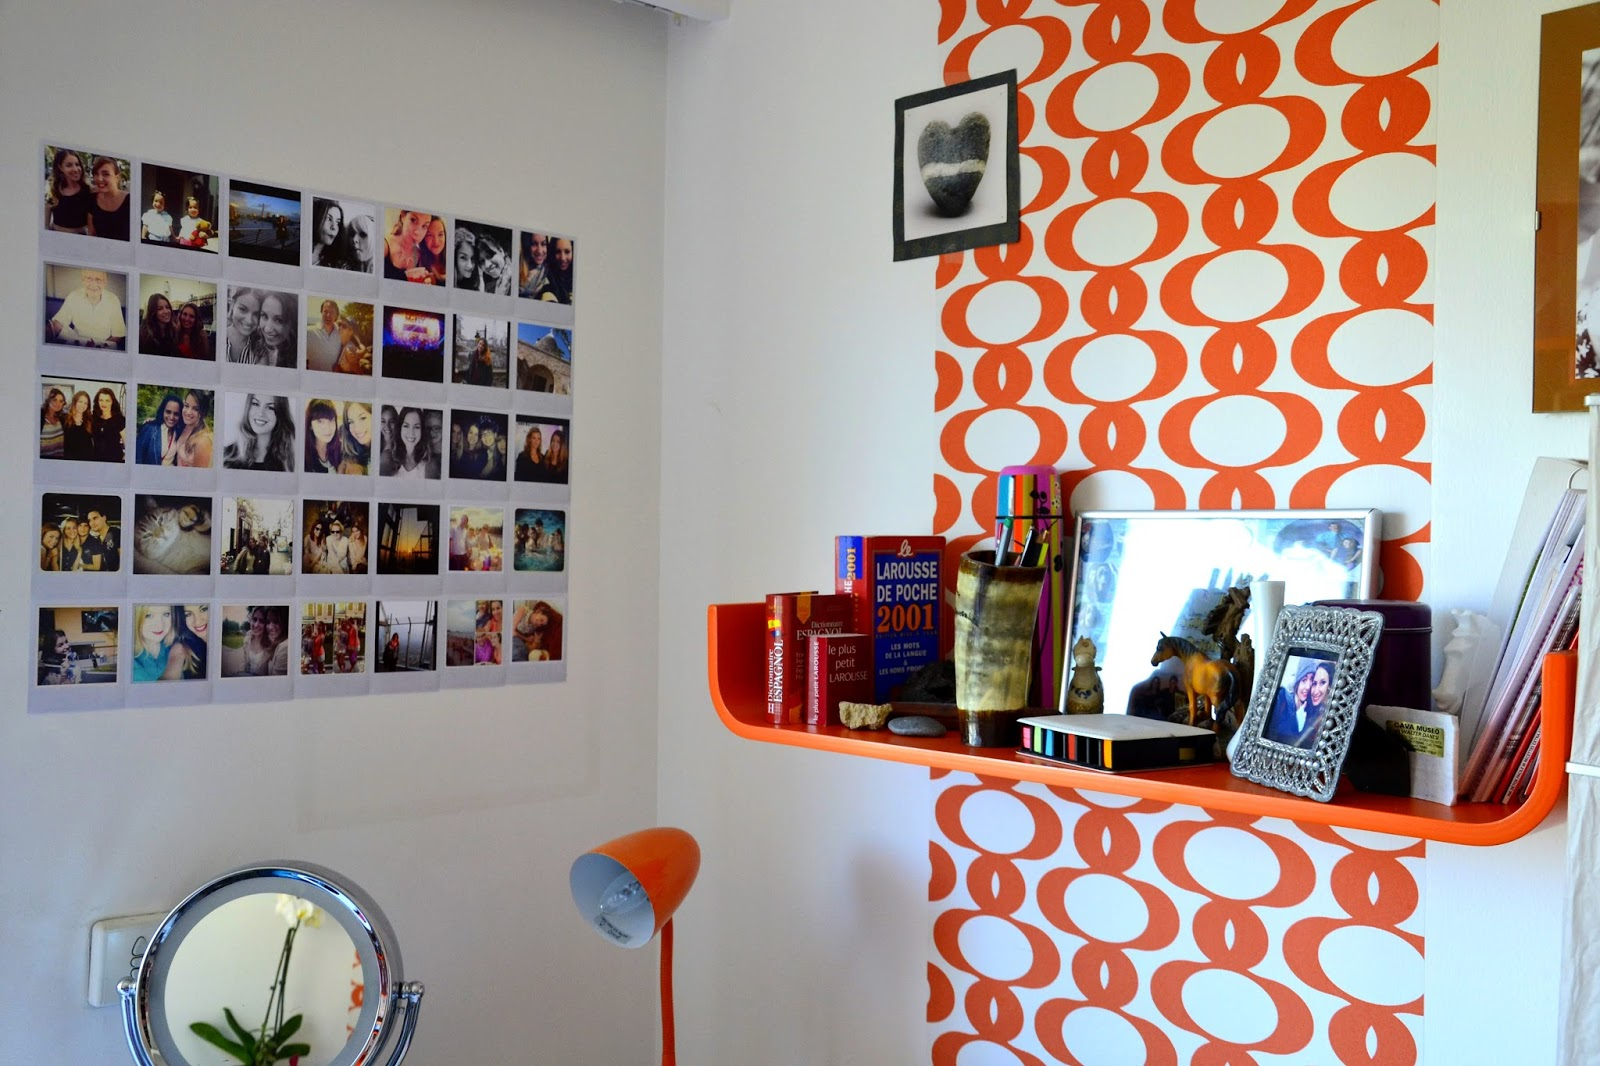 Comment j 39 ai cr mon mur instagram d co 1 a frenchie - Faire un mur de photos decoration ...